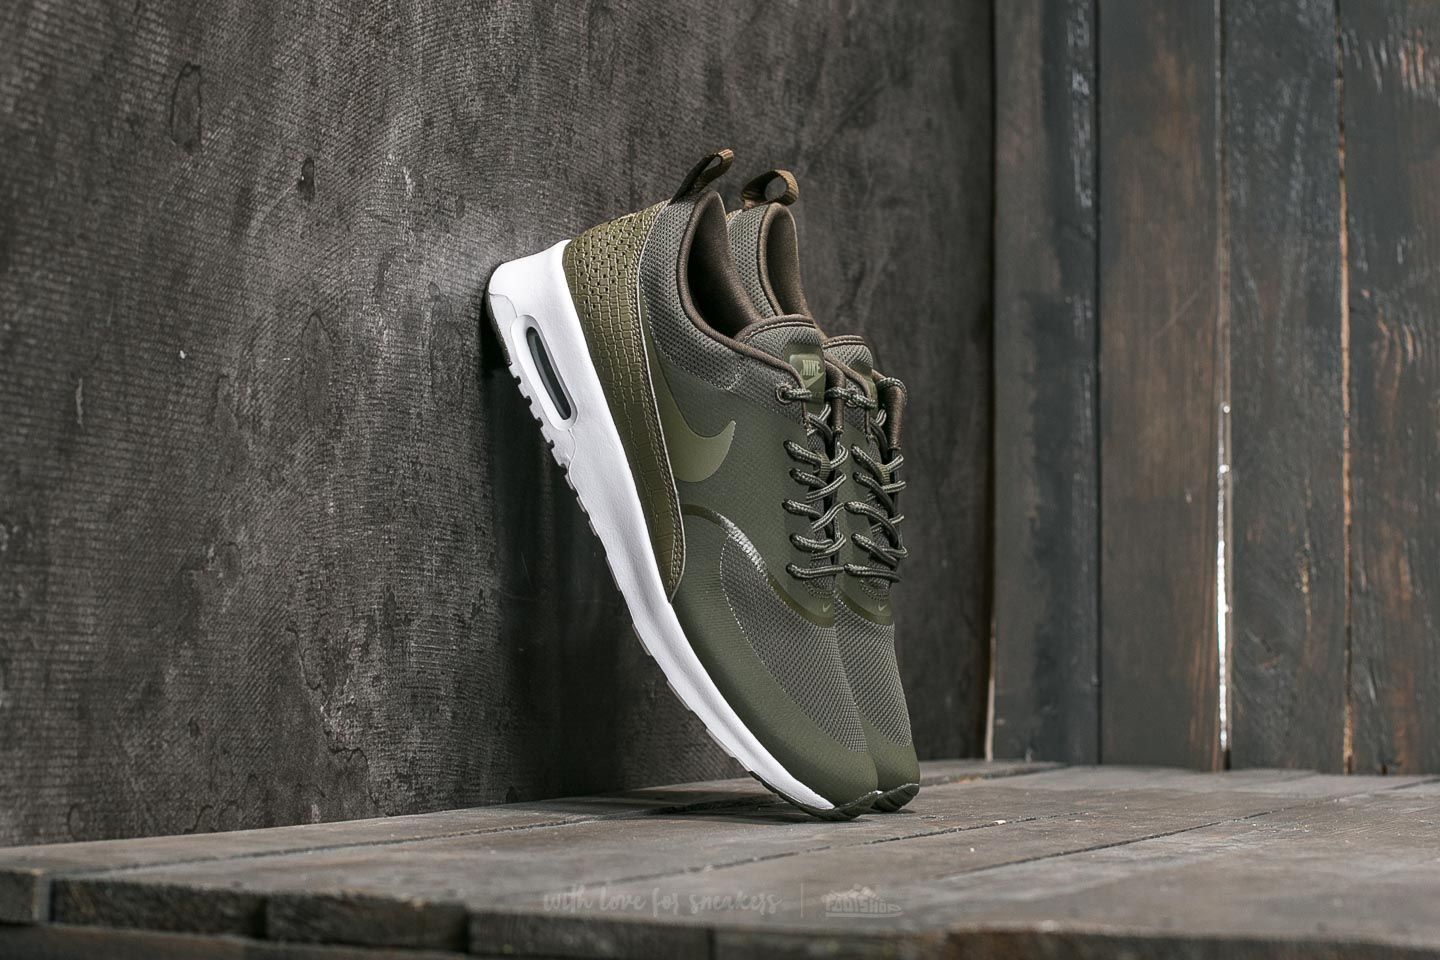 179352d34f1 Nike W Air Max Thea Cargo Khaki  Medium Olive  White